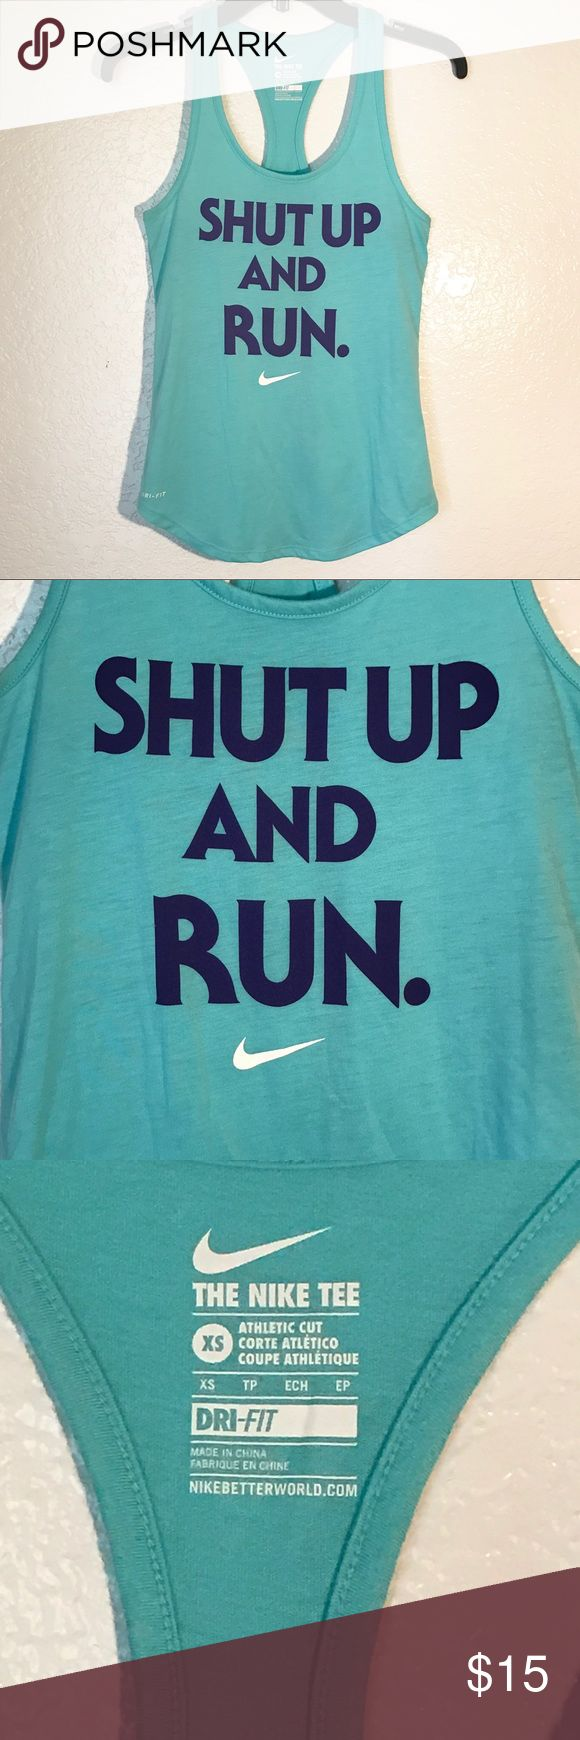 """Nike Dri Fit Tee Athletic Cut Tank Top Shirt XS Nike shirt Sz XS// in great condition no stains or rips// smoke/pet free home  15"""" bust 26"""" length Nike Tops Tank Tops"""